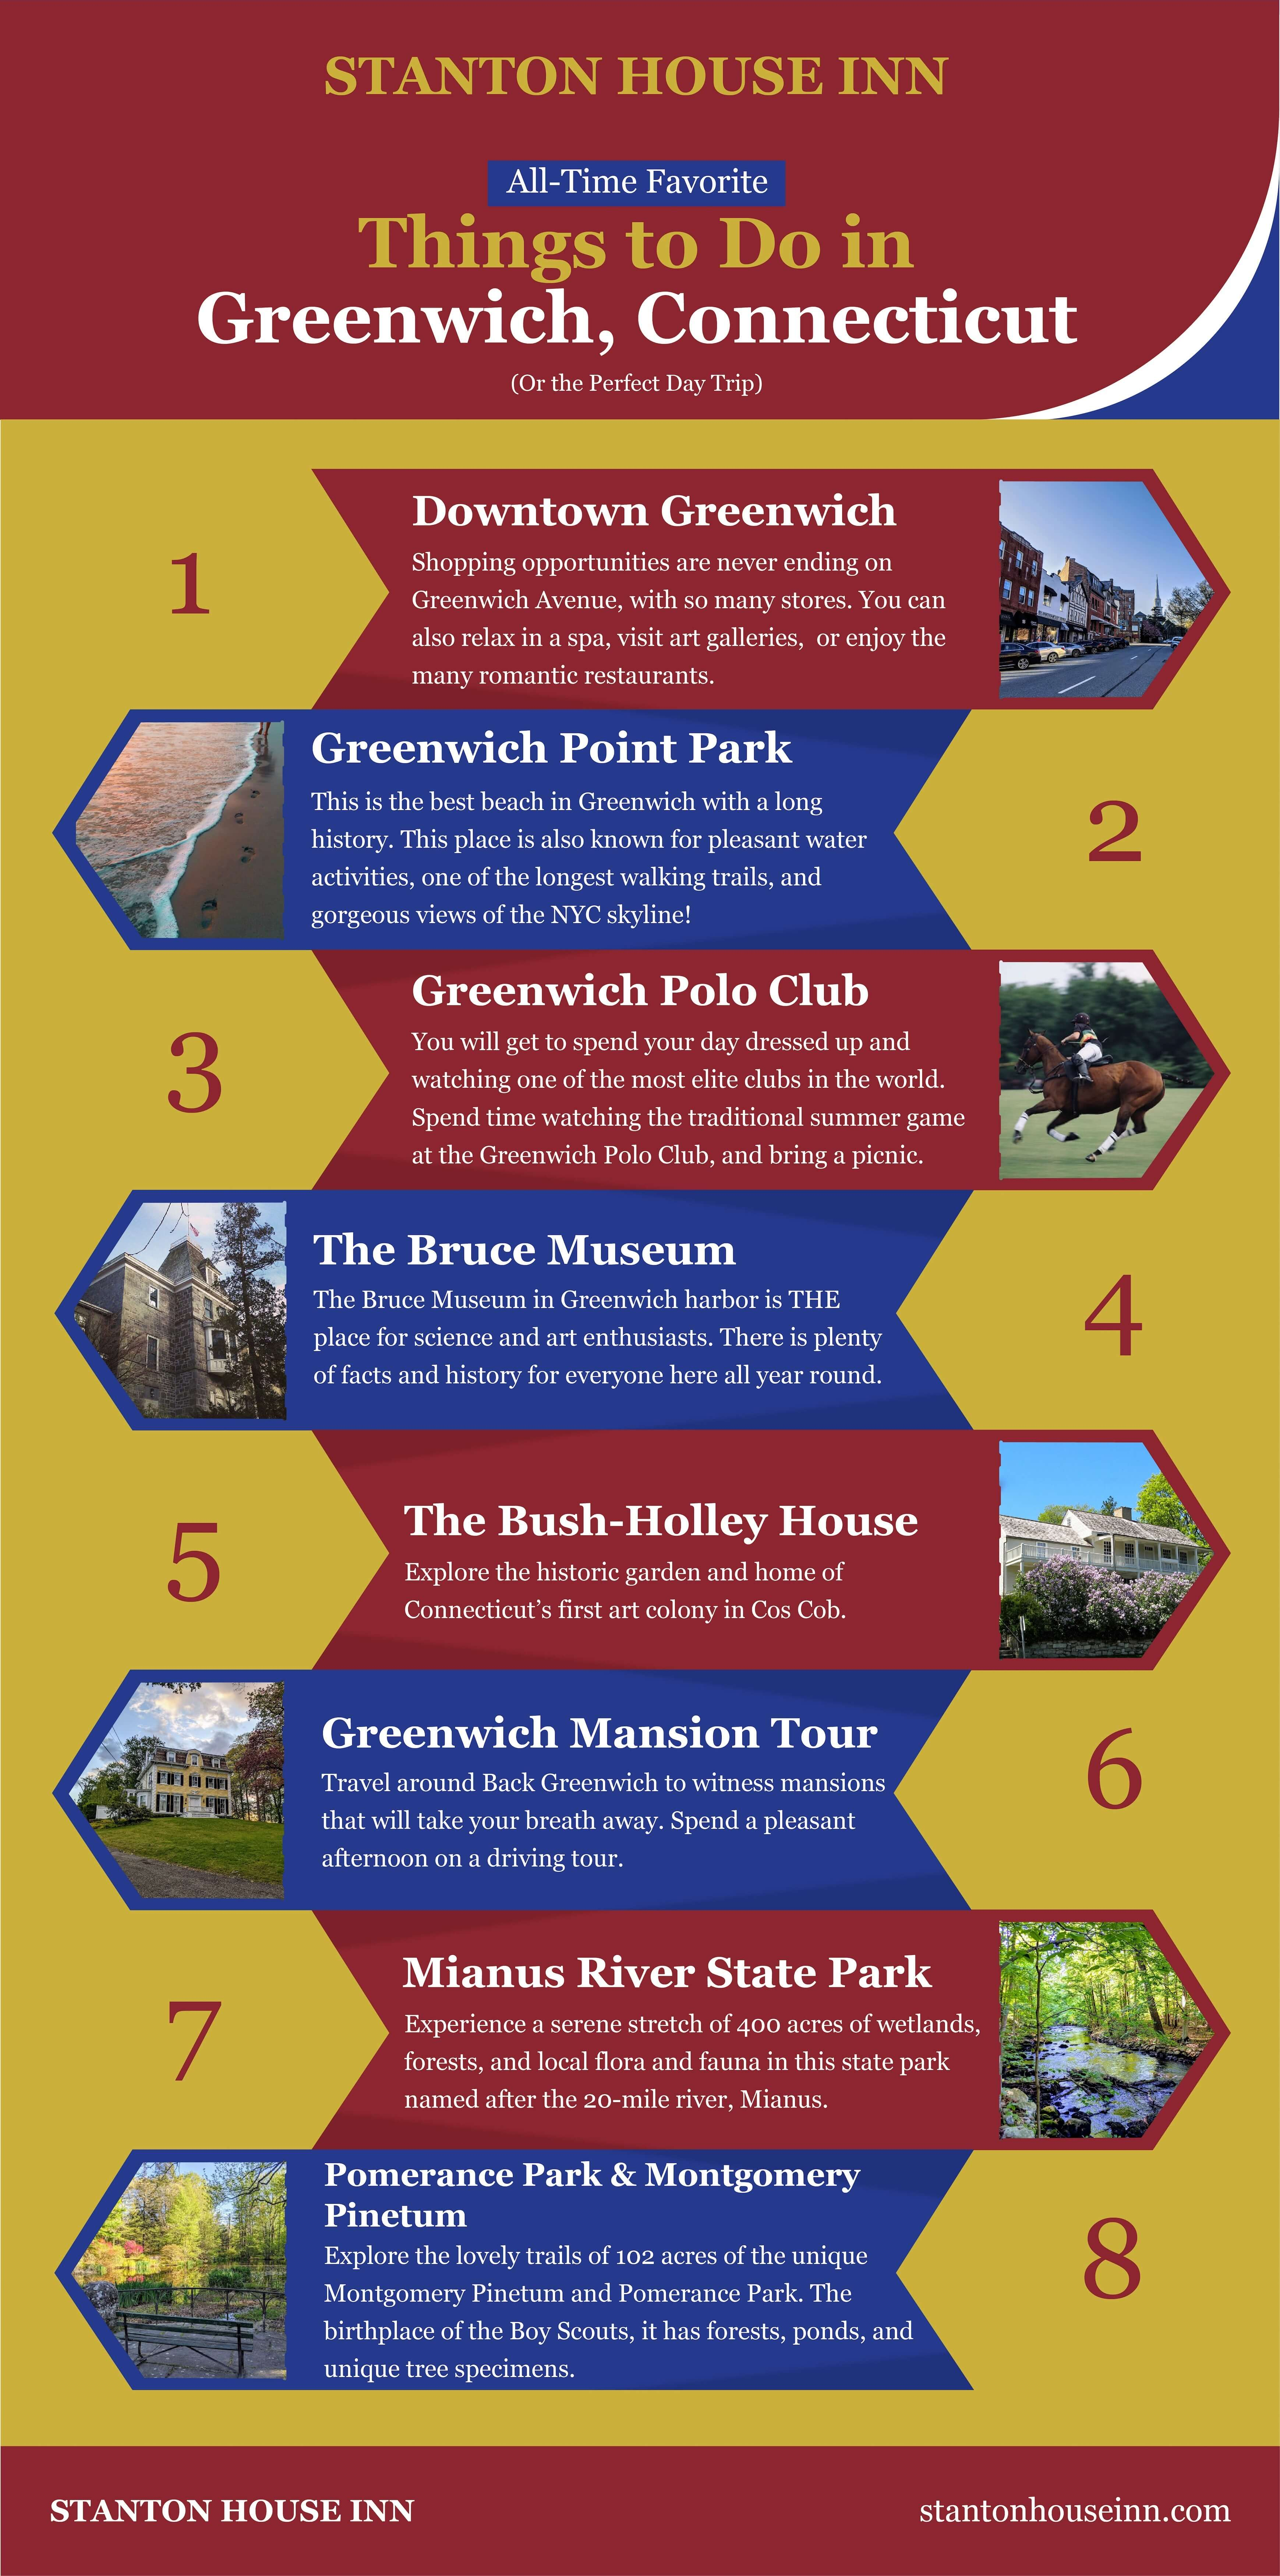 Top 8 attractions and activities in Greenwich, Connecticut; perfect for a day trip or a long weekend here